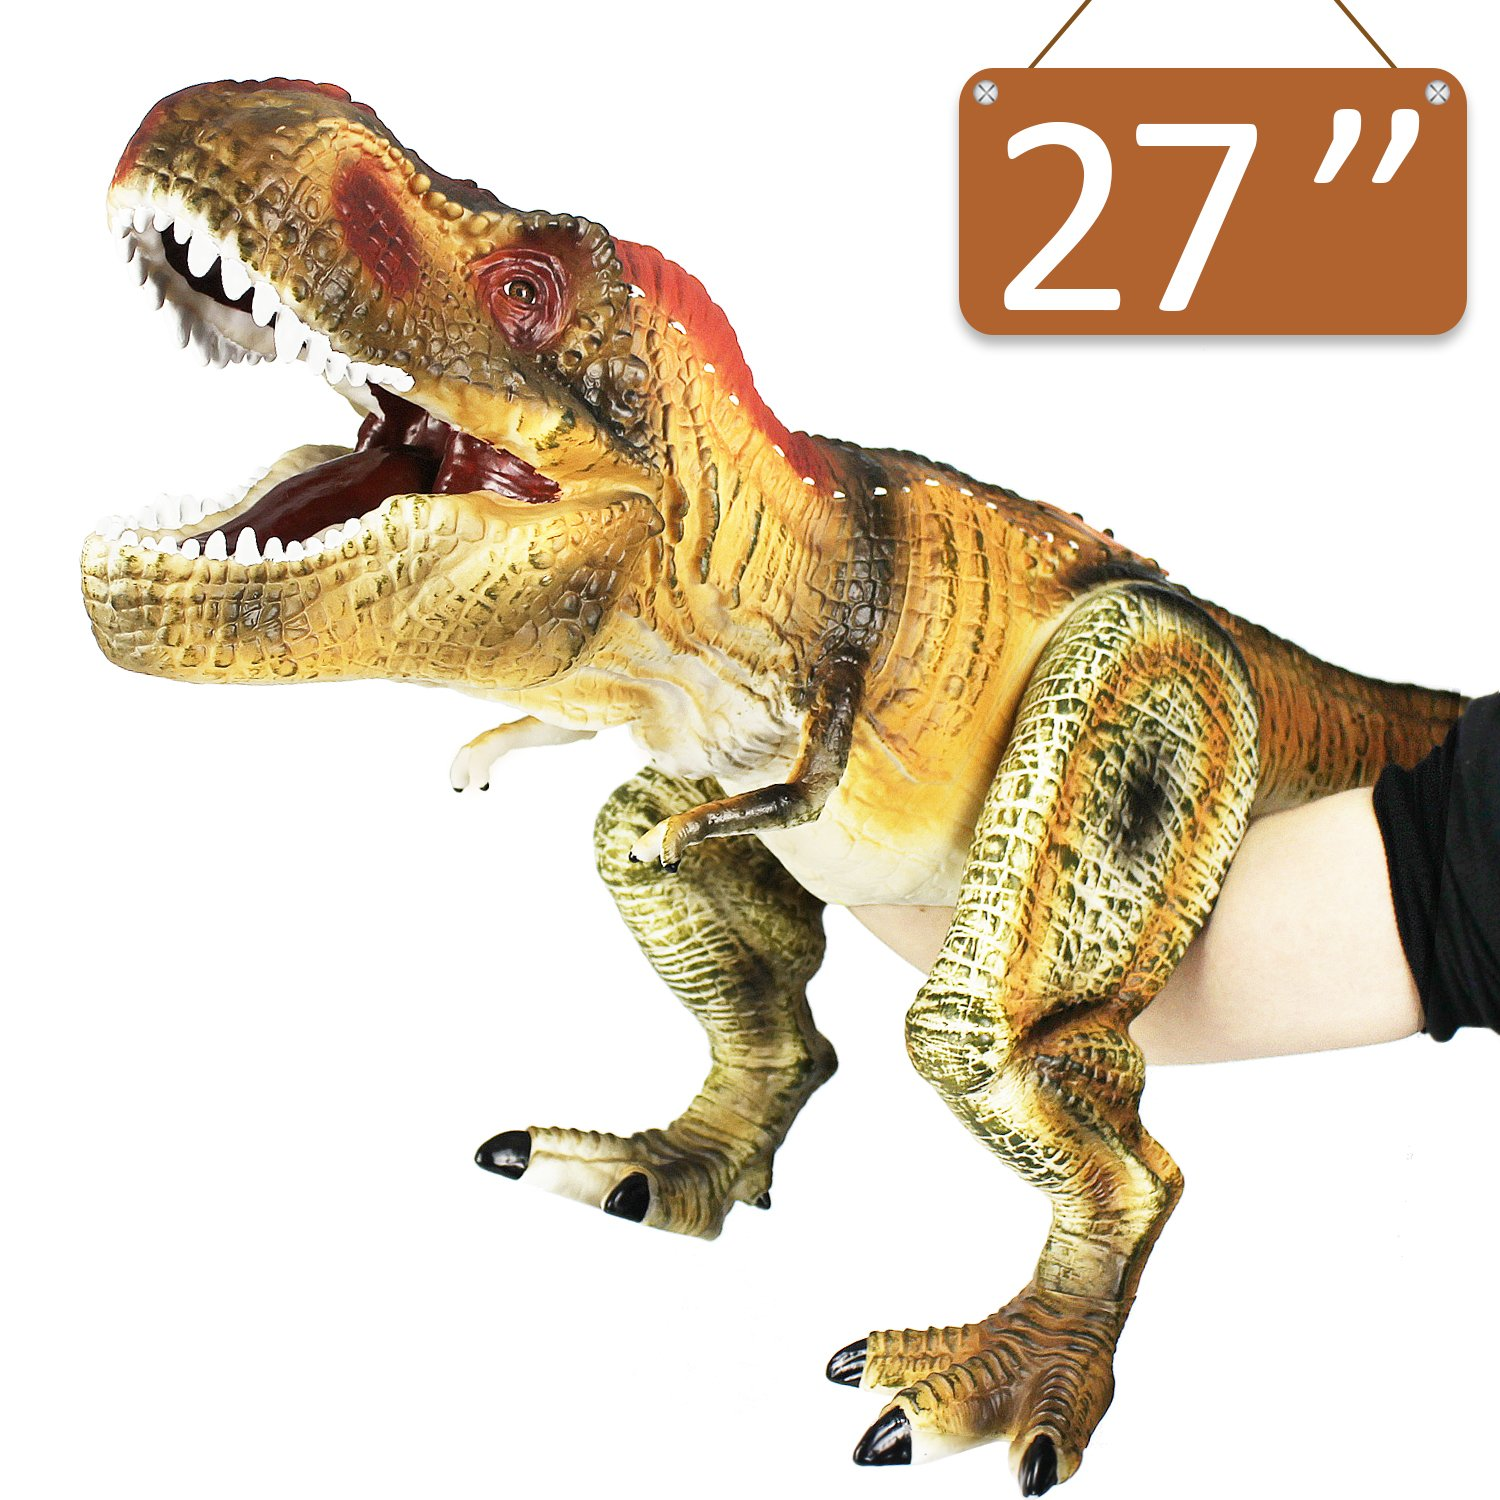 Tyrannosaurus Rex - iPlay, iLearn Dinosaur Action Figure Toys Hand Puppet Dinosaur Animals With Noises (27 Inches)